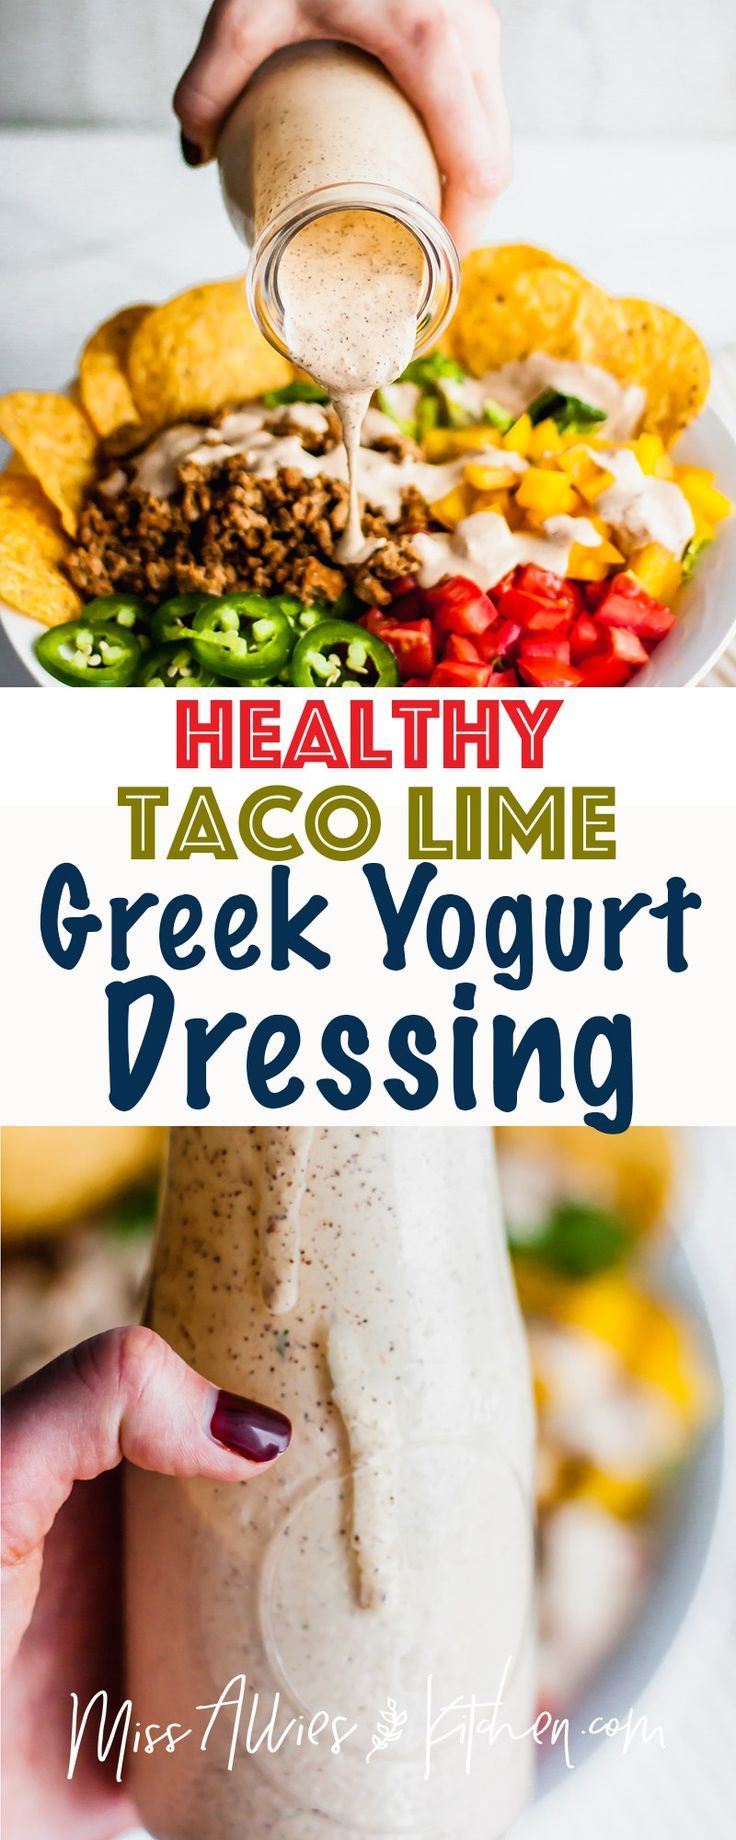 Healthy Taco Lime Greek Yogurt Dressing - a healthy way to use greek yogurt to top a gluten free and low carb salad! This dressing is easy to throw together so you can eat those vegetables! #greekyogurt #dressing #saladdressing #healthymeal #healthyeating #cleaneating